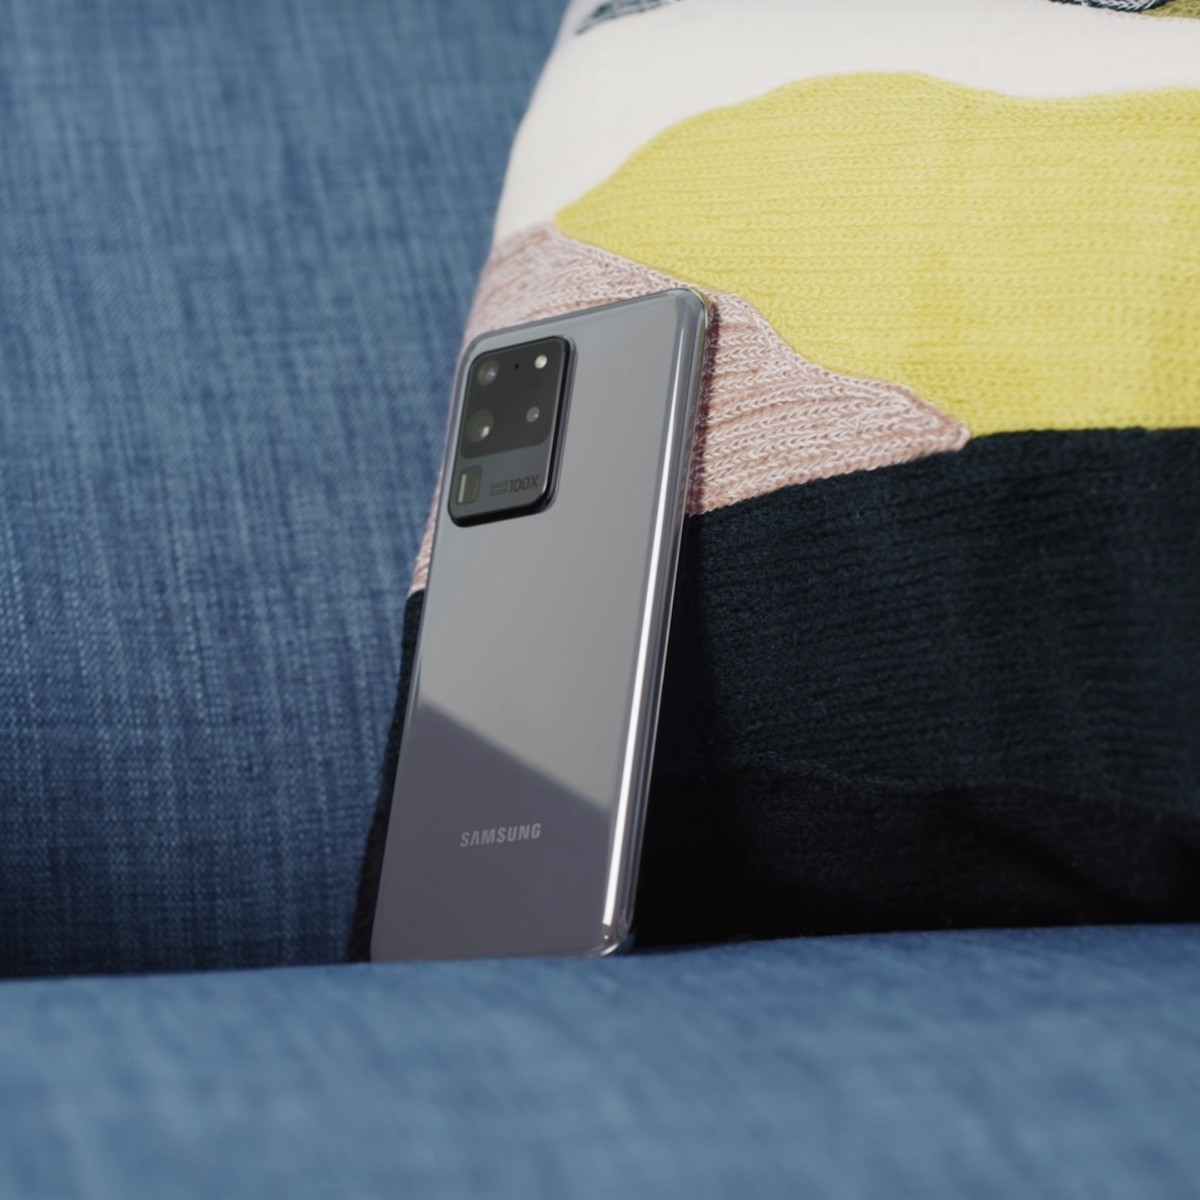 Samsung Galaxy S20 Ultra Super-Magnifying Smartphone takes a massive leap in zoom photography